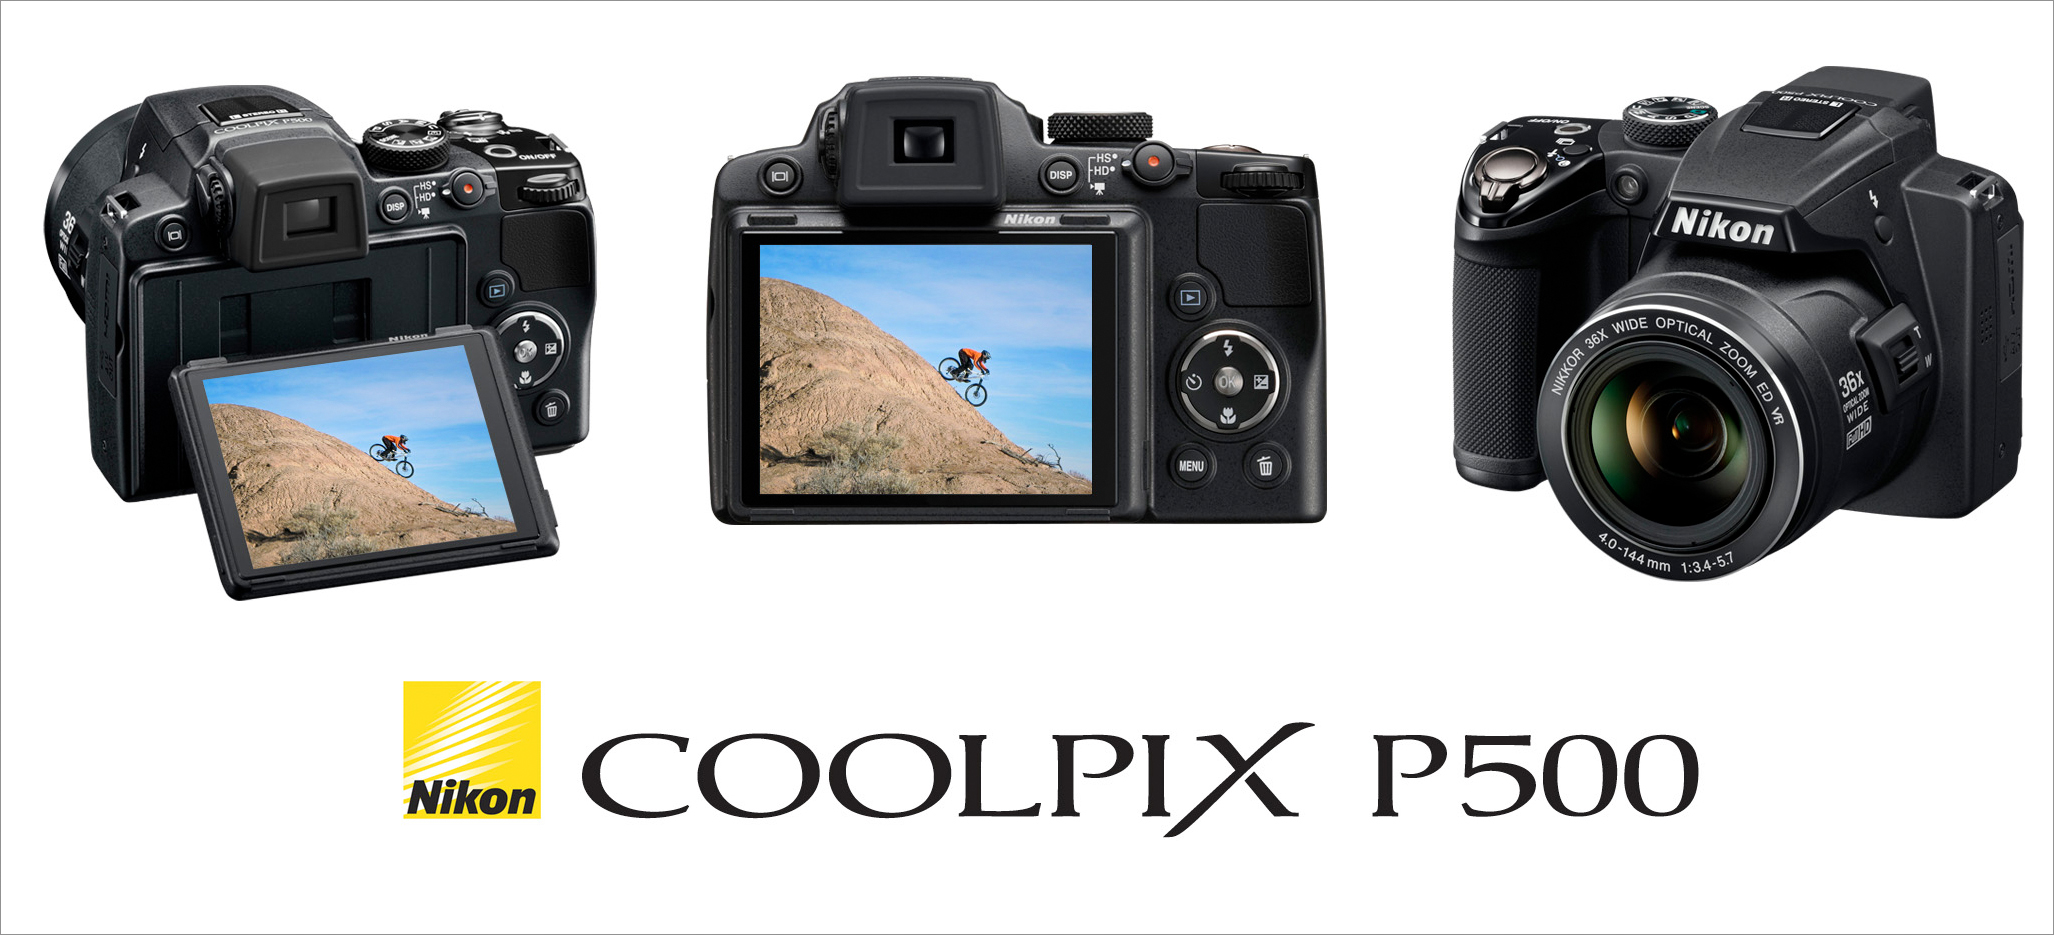 nikon-coolpix-p500-withborder